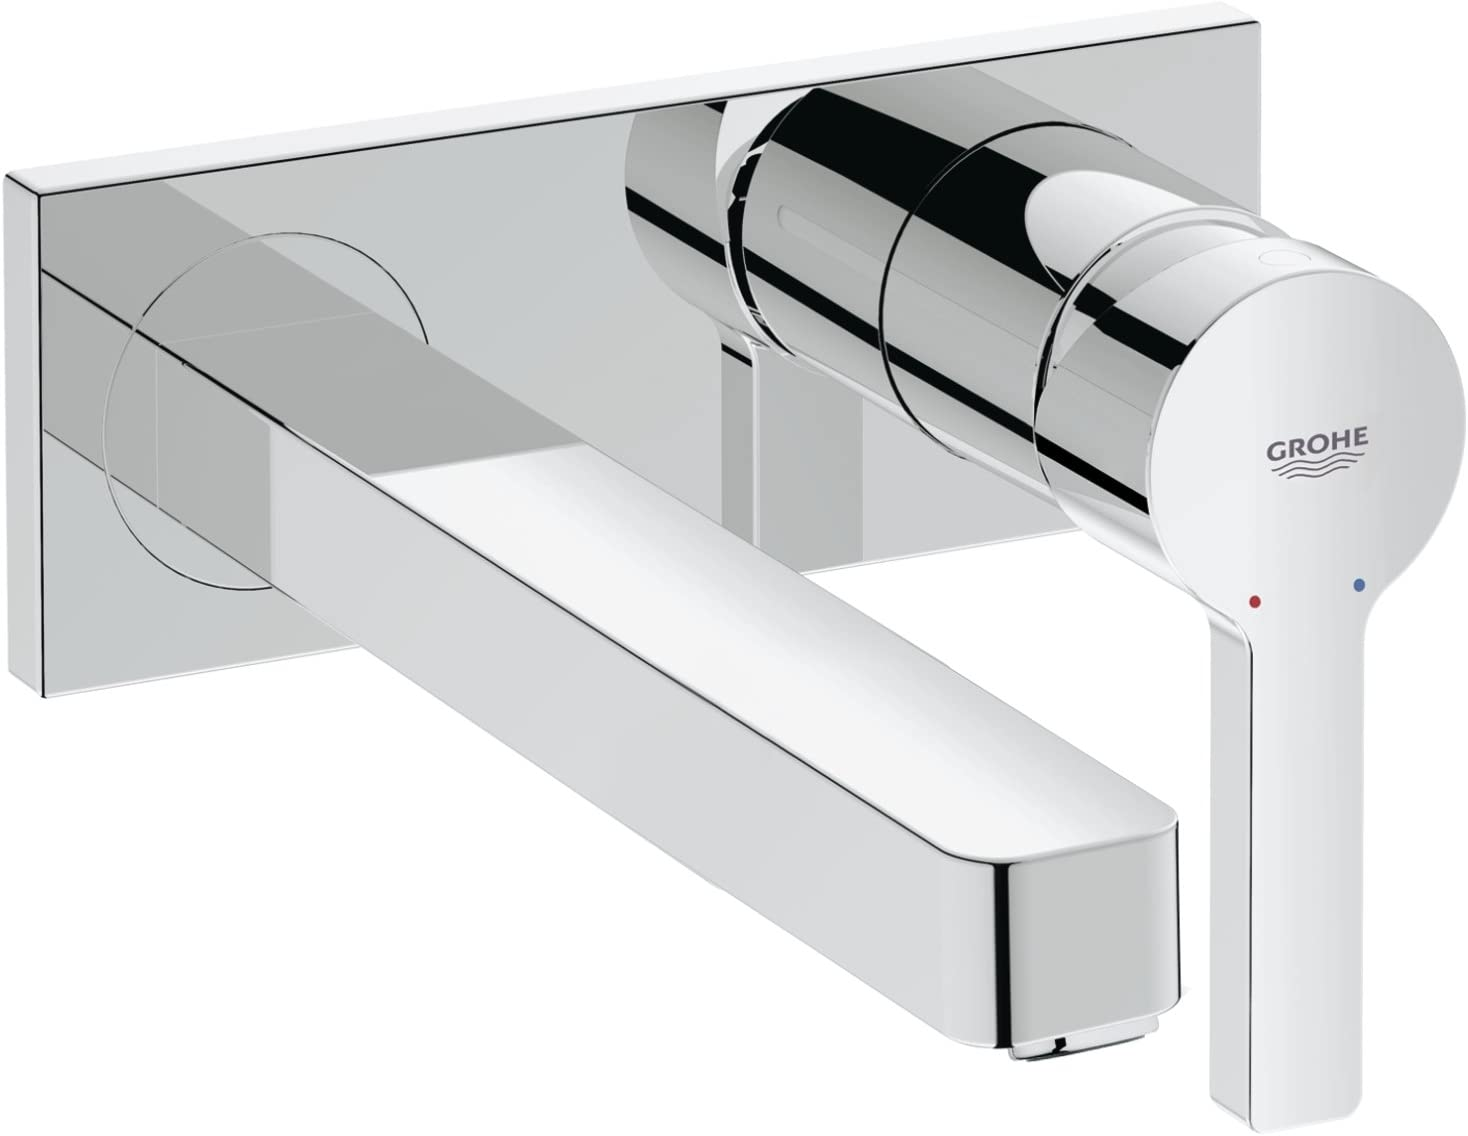 Import Allemagne Grohe Mitigeur Lavabo Lineare 19409000